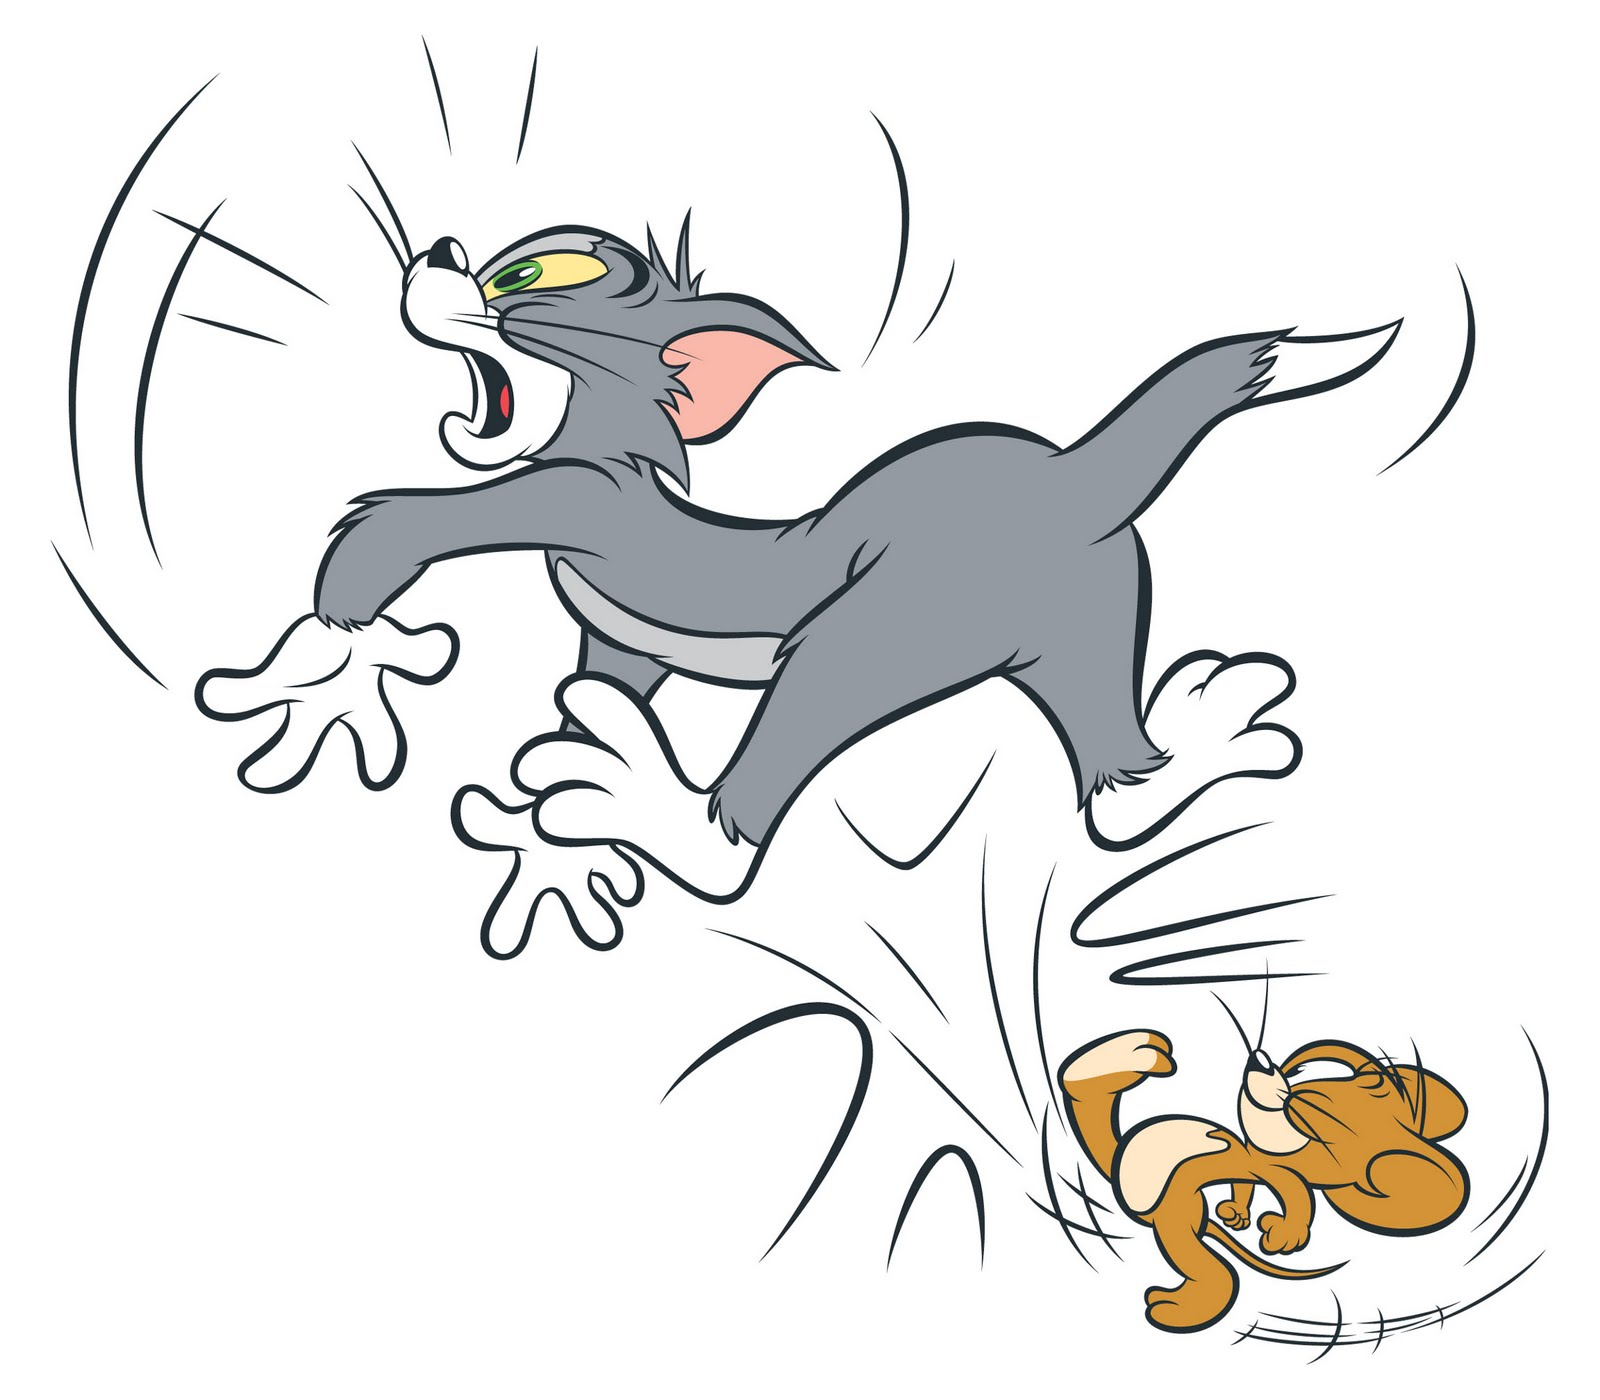 Original ⋅. Similar Wallpaper Images. Tom and Jerry ...